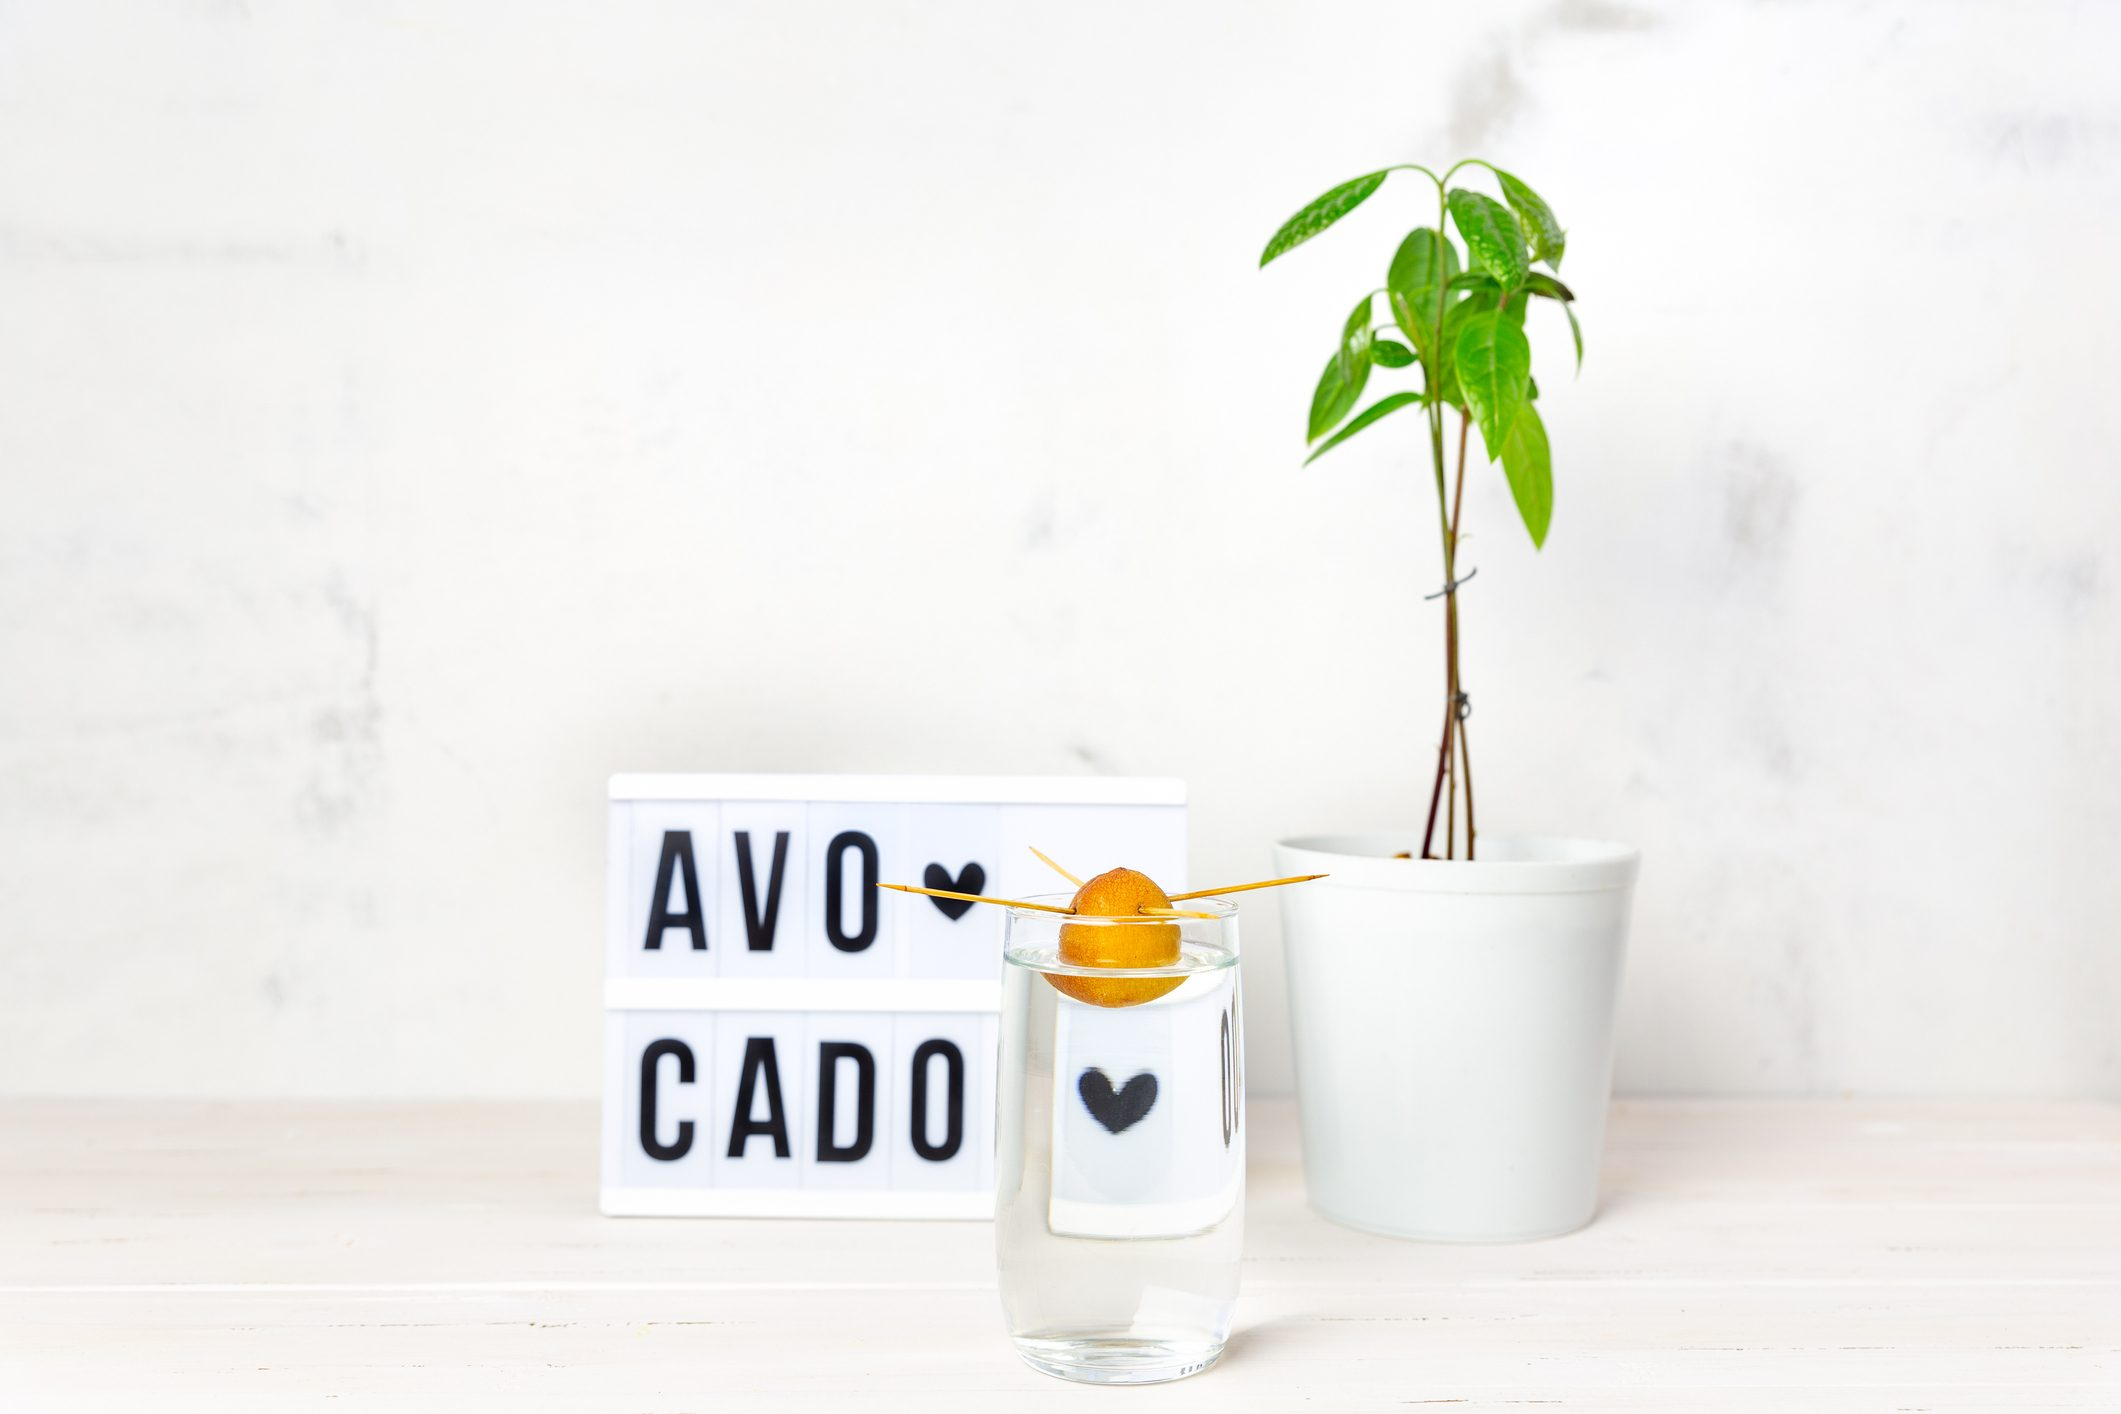 Indoor Avocado tree plant in a white pot, an avocado seed in a glass of water, light box with text on a white background.